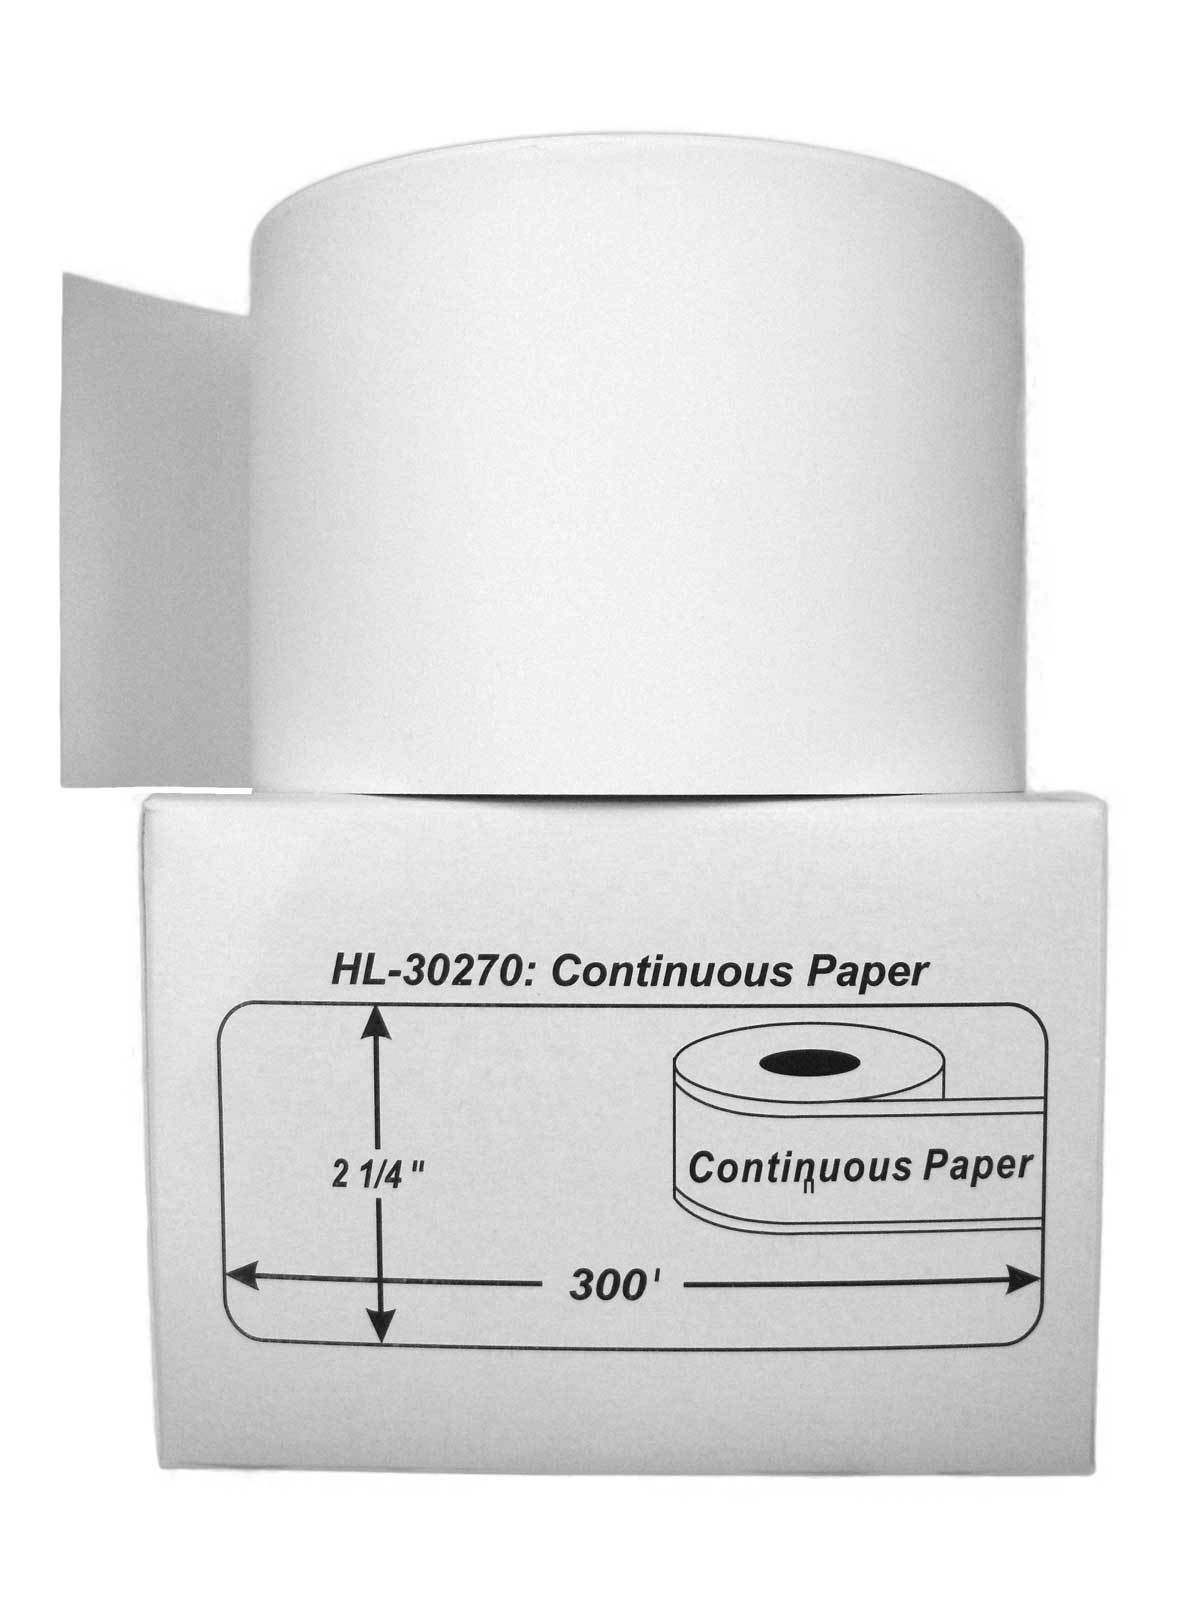 50 Rolls of Continuous Receipt Paper for DYMO LabelWriters 30270